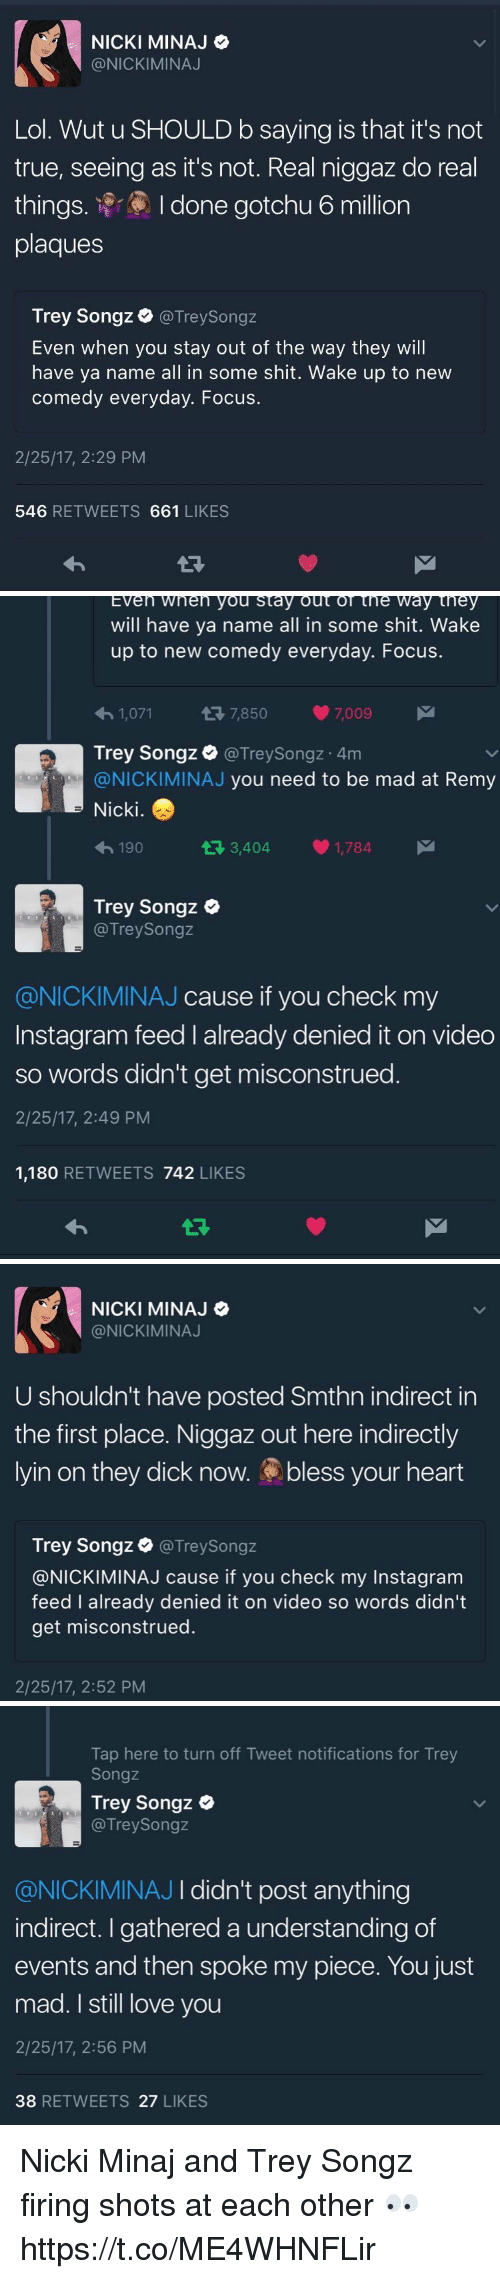 Instagram, Lol, and Love: NICKI MINAJ  @NICKIMINAJ  Lol. Wut u SHOULD b saying is that it's not  true, seeing as it's not. Real niggaz do real  things  Pr done gotchu 6 million  plaques  Trey Songz  Trey Songz  Even when you stay out of the way they will  have ya name all in some shit. Wake up to new  comedy everyday. Focus.  2/25/17, 2:29 PM  546  RETWEETS  661 LIKES   Even when you stay out of the Way they  will have ya name all in some shit. Wake  up to new comedy everyday. Focus.  1,071 7,850 7,009  M  h Trey Songz Trey Songz 4m  @NICKIMINAJ you need to be mad at Remy  Nicki.  3,404 1,784  M  h 190  Trey Songz  @Trey Songz  @NICKIMINAJ cause if you check my  Instagram feed l already denied it on video  so words didn't get misconstrued  2/25/17, 2:49 PM  1,180  RETWEETS 742  LIKES   NICKI MINAJ  NICKI MINAJ  U shouldn't have posted Smthn indirect in  the first place. Niggaz out here indirectly  yin on they dick now. bless your heart  Trey Songz  (a Trey Songz  @NICKIMINAJ cause if you check my Instagram  feed I already denied it on video so words didn't  get misconstrued.  2/25/17, 2:52 PM   Tap here to turn off Tweet notifications for Trey  Songz  Trey Songz  @Trey Songz  @NICKIMINAJ I didn't post anything  indirect. I gathered a understanding of  events and then spoke my piece. You just  mad. I still love you  2/25/17, 2:56 PM  38  RET WEETS 27  LIKES Nicki Minaj and Trey Songz firing shots at each other 👀 https://t.co/ME4WHNFLir